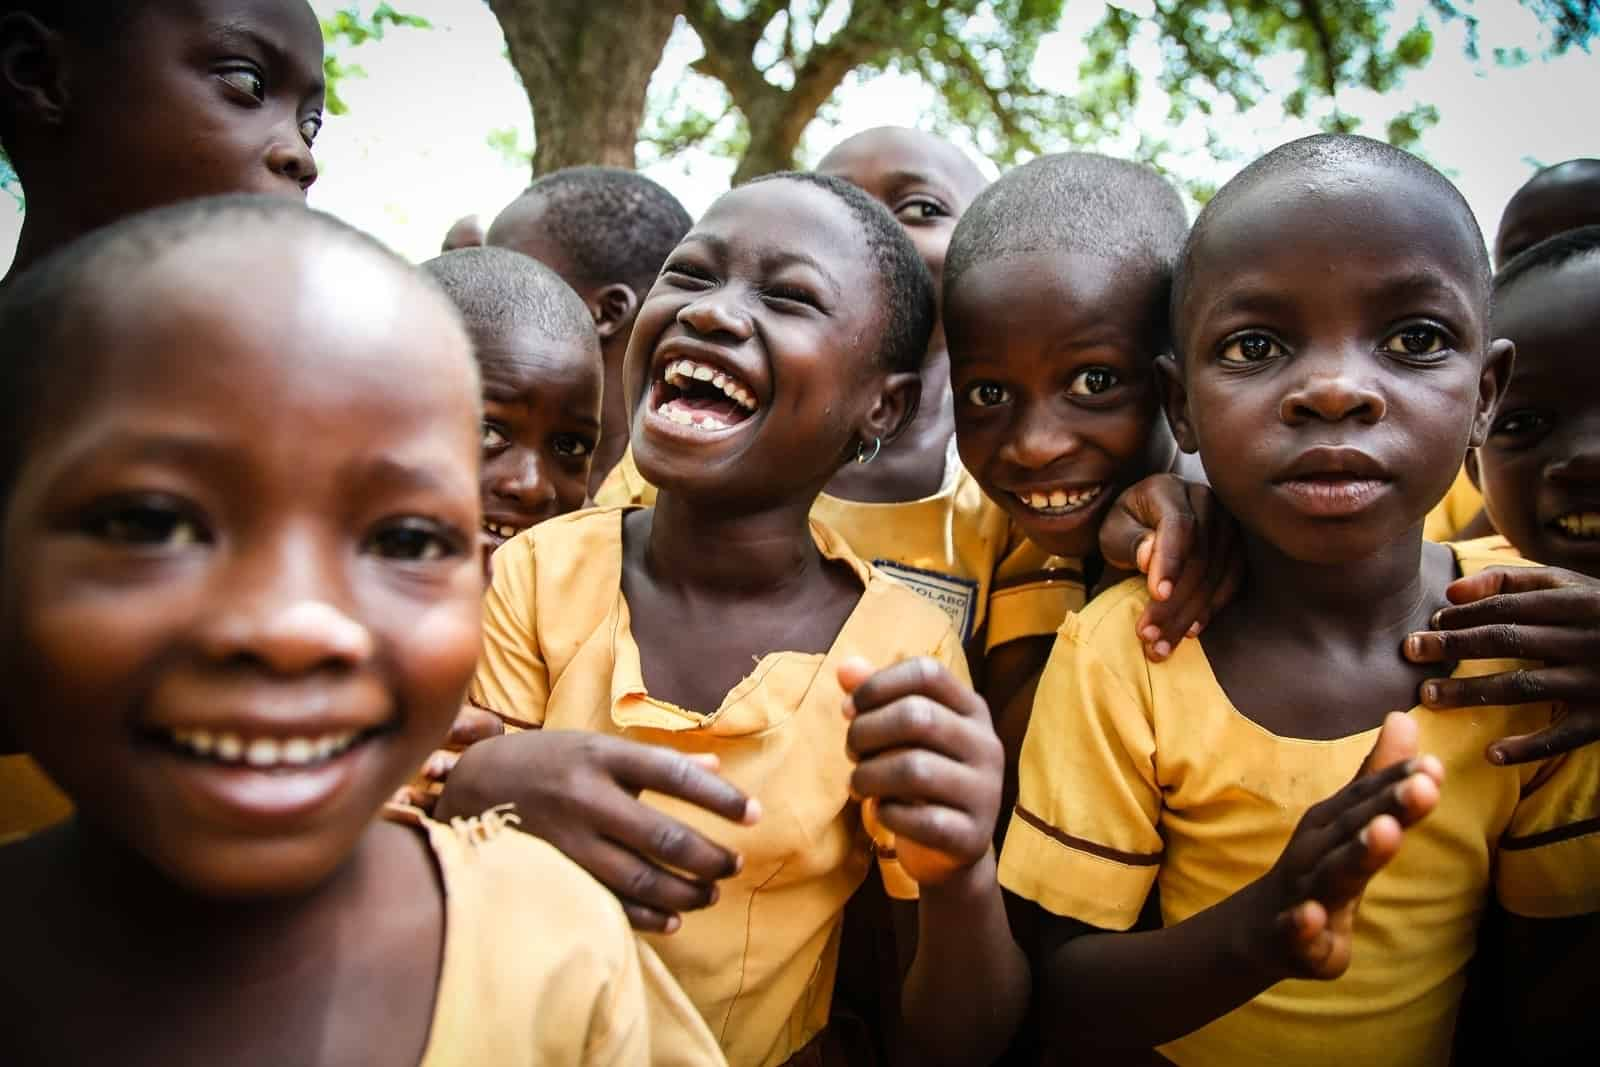 A group of Ghanaian children wearing yellow shirts smile and laugh